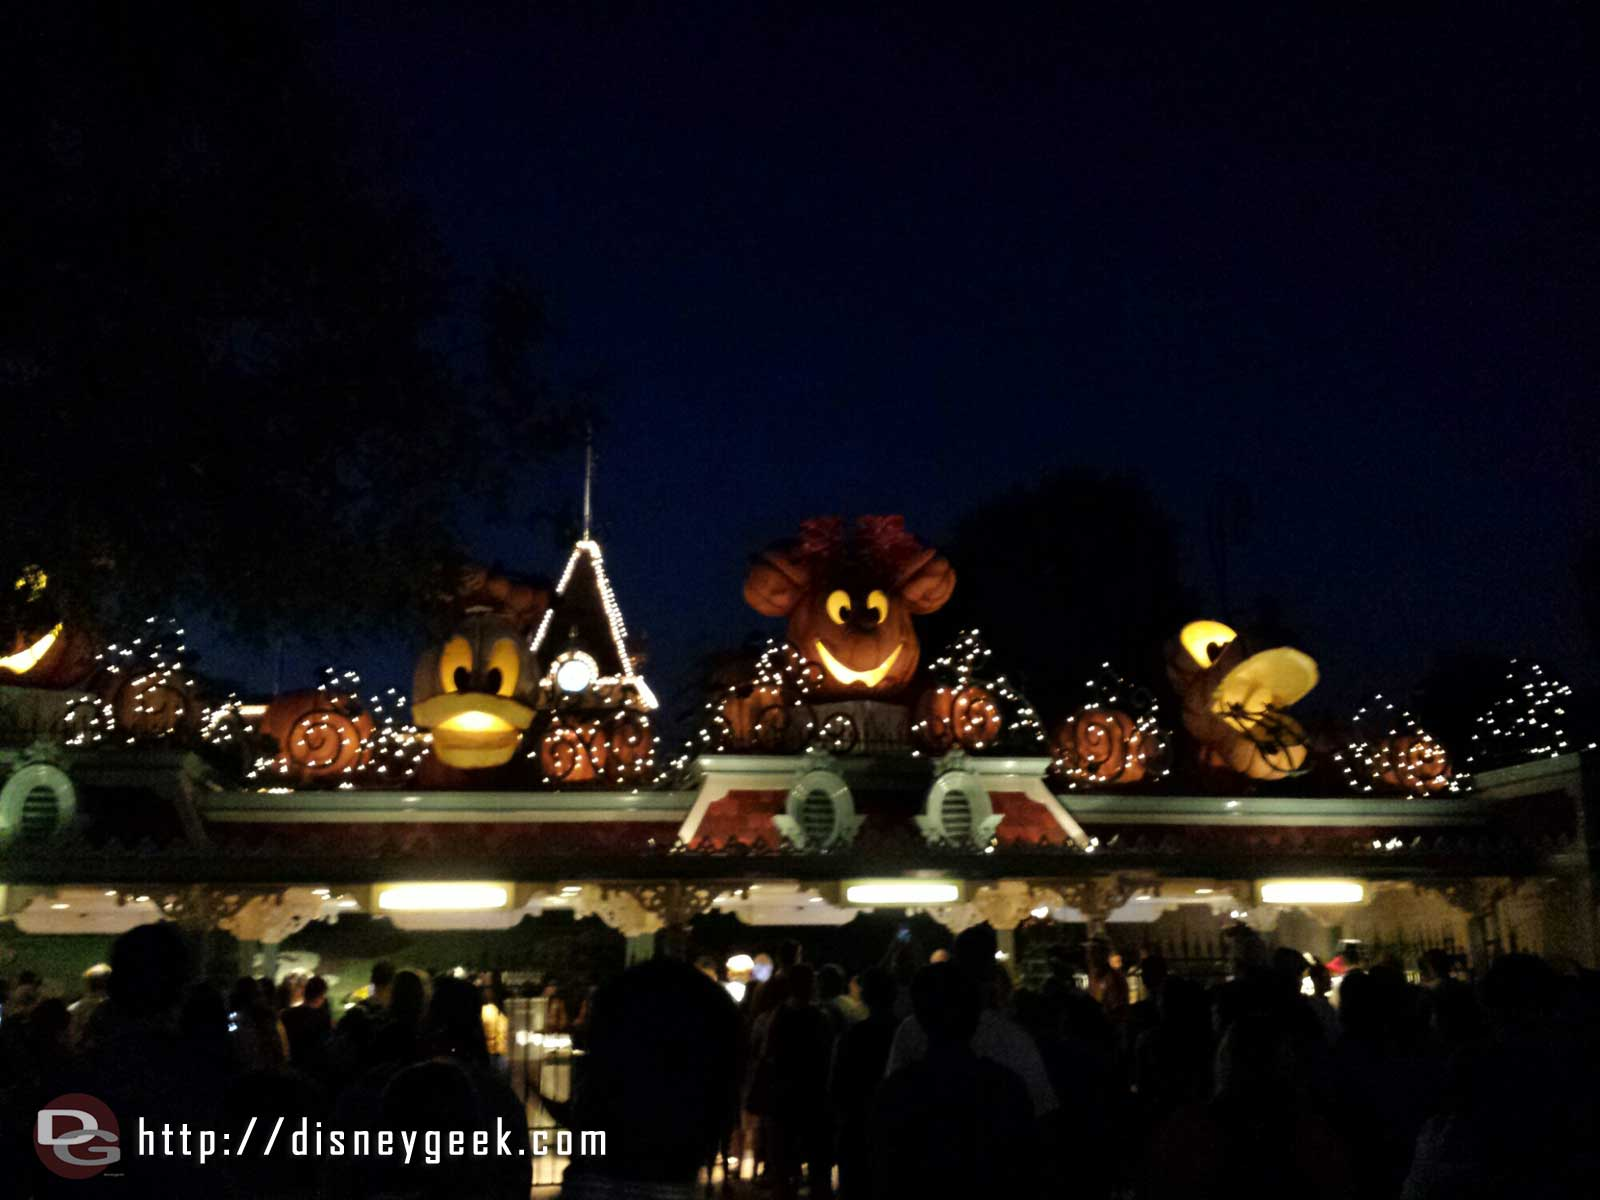 #Disneyland entrance – pumpkin characters lit up,  the lines stretched past the Monorail beam